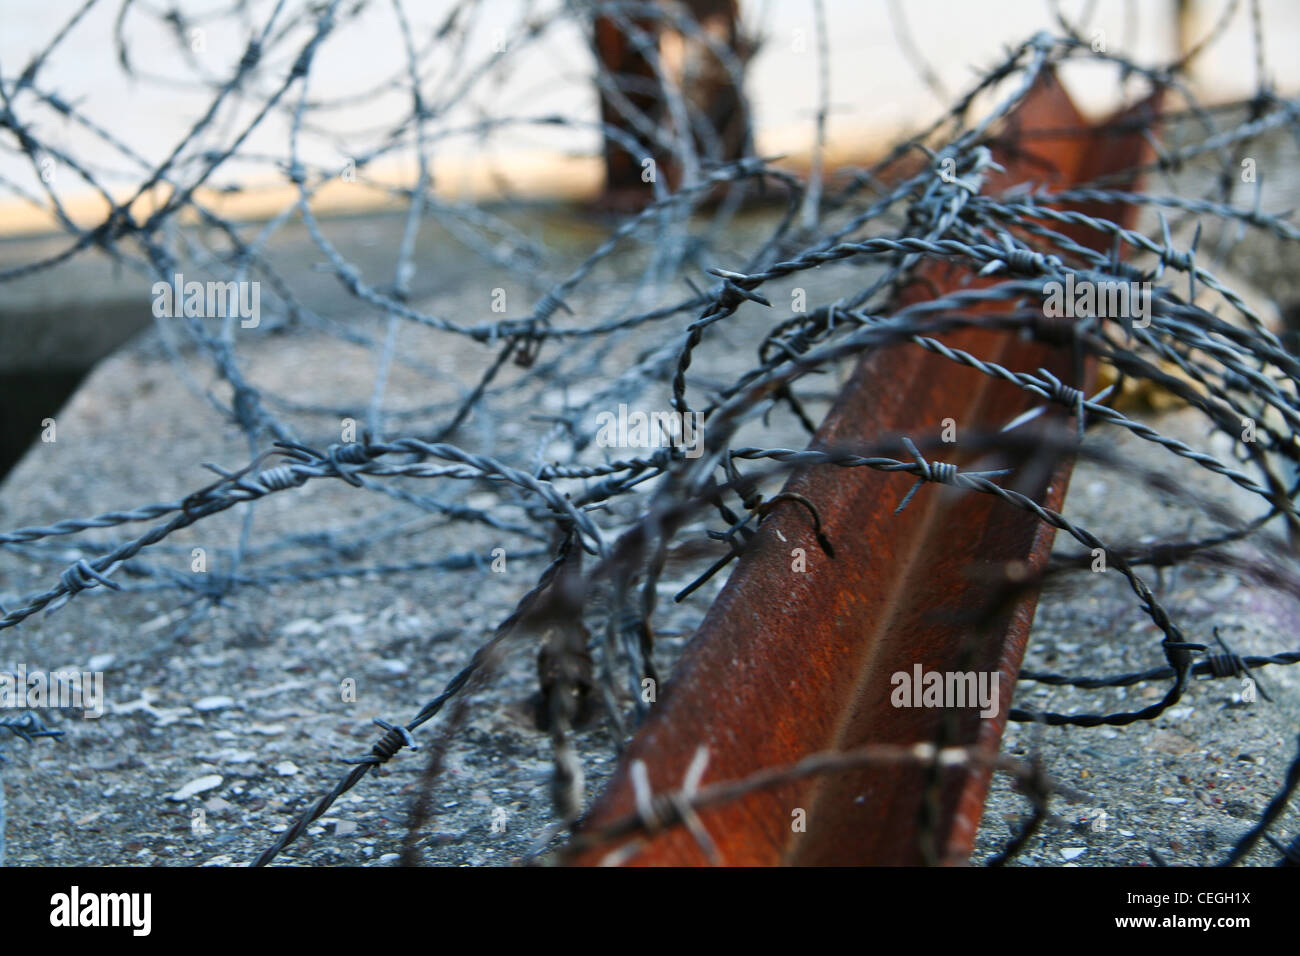 Wrapped In Barb Wire - WIRE Center •